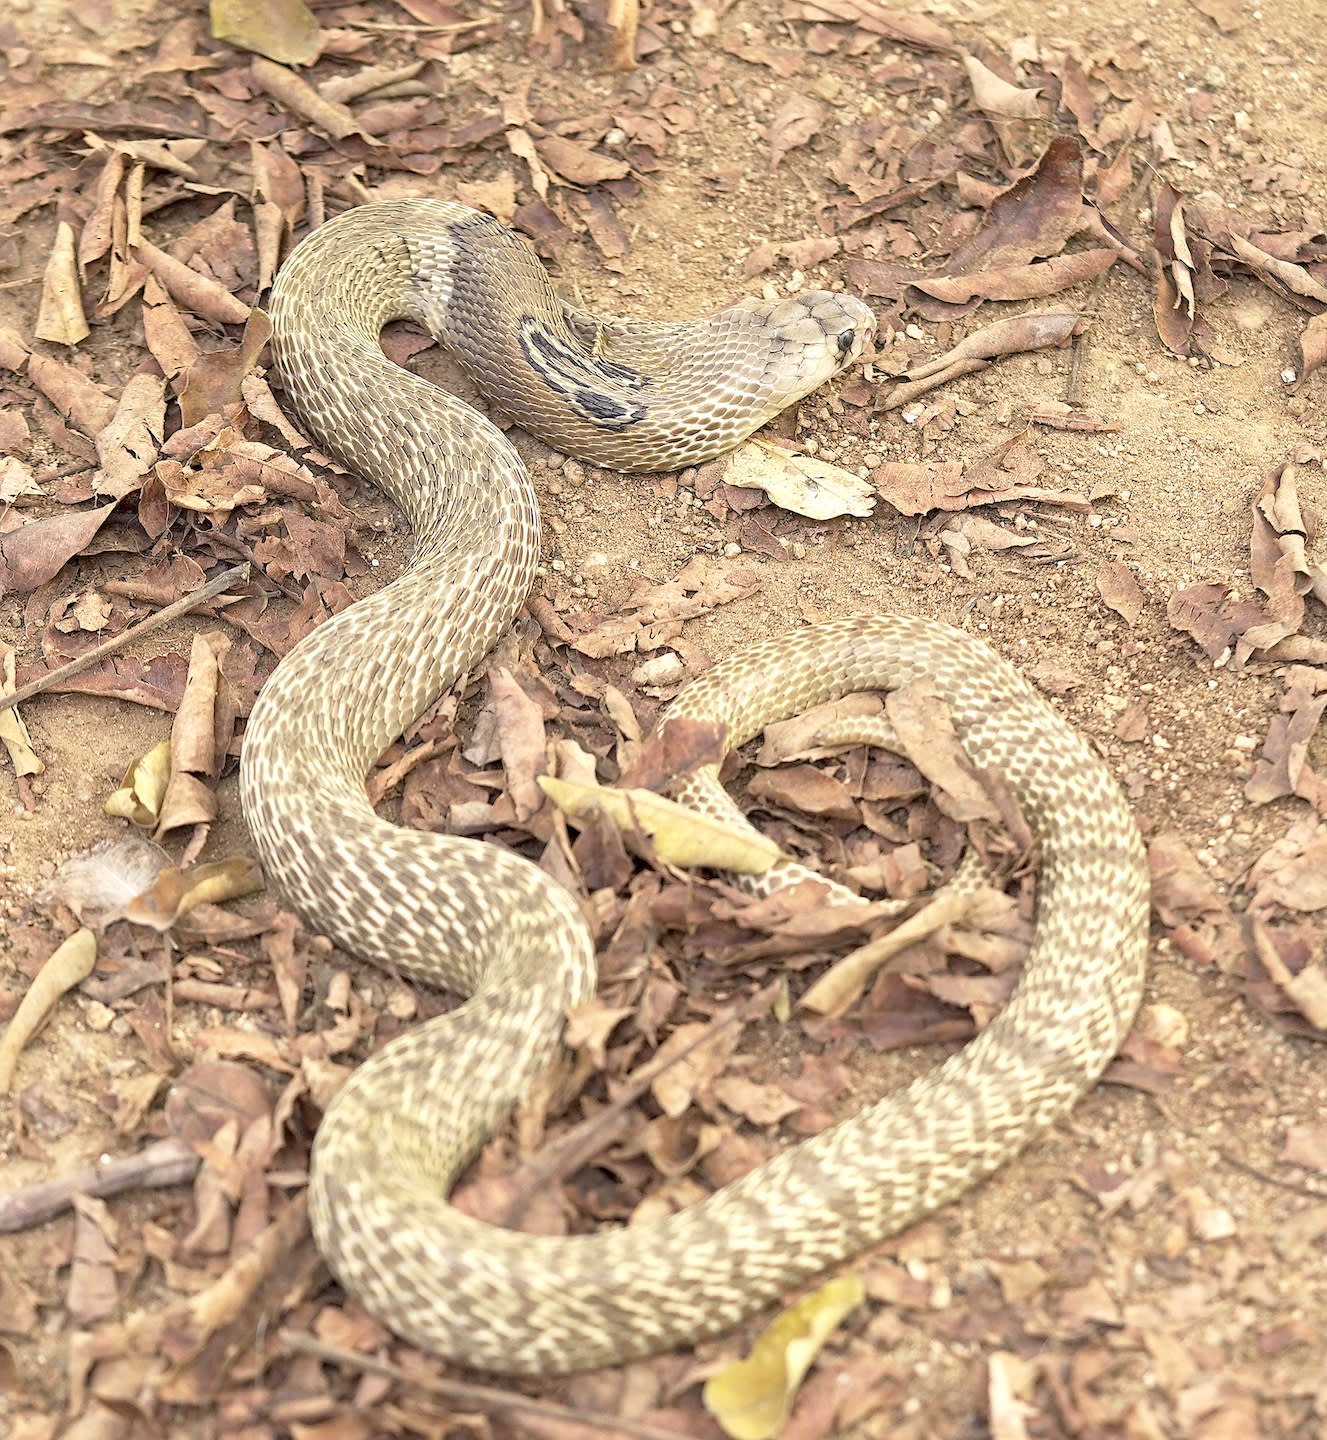 The snake's colour can vary from black to dark brown, to a creamy white across the habitats it occupies.